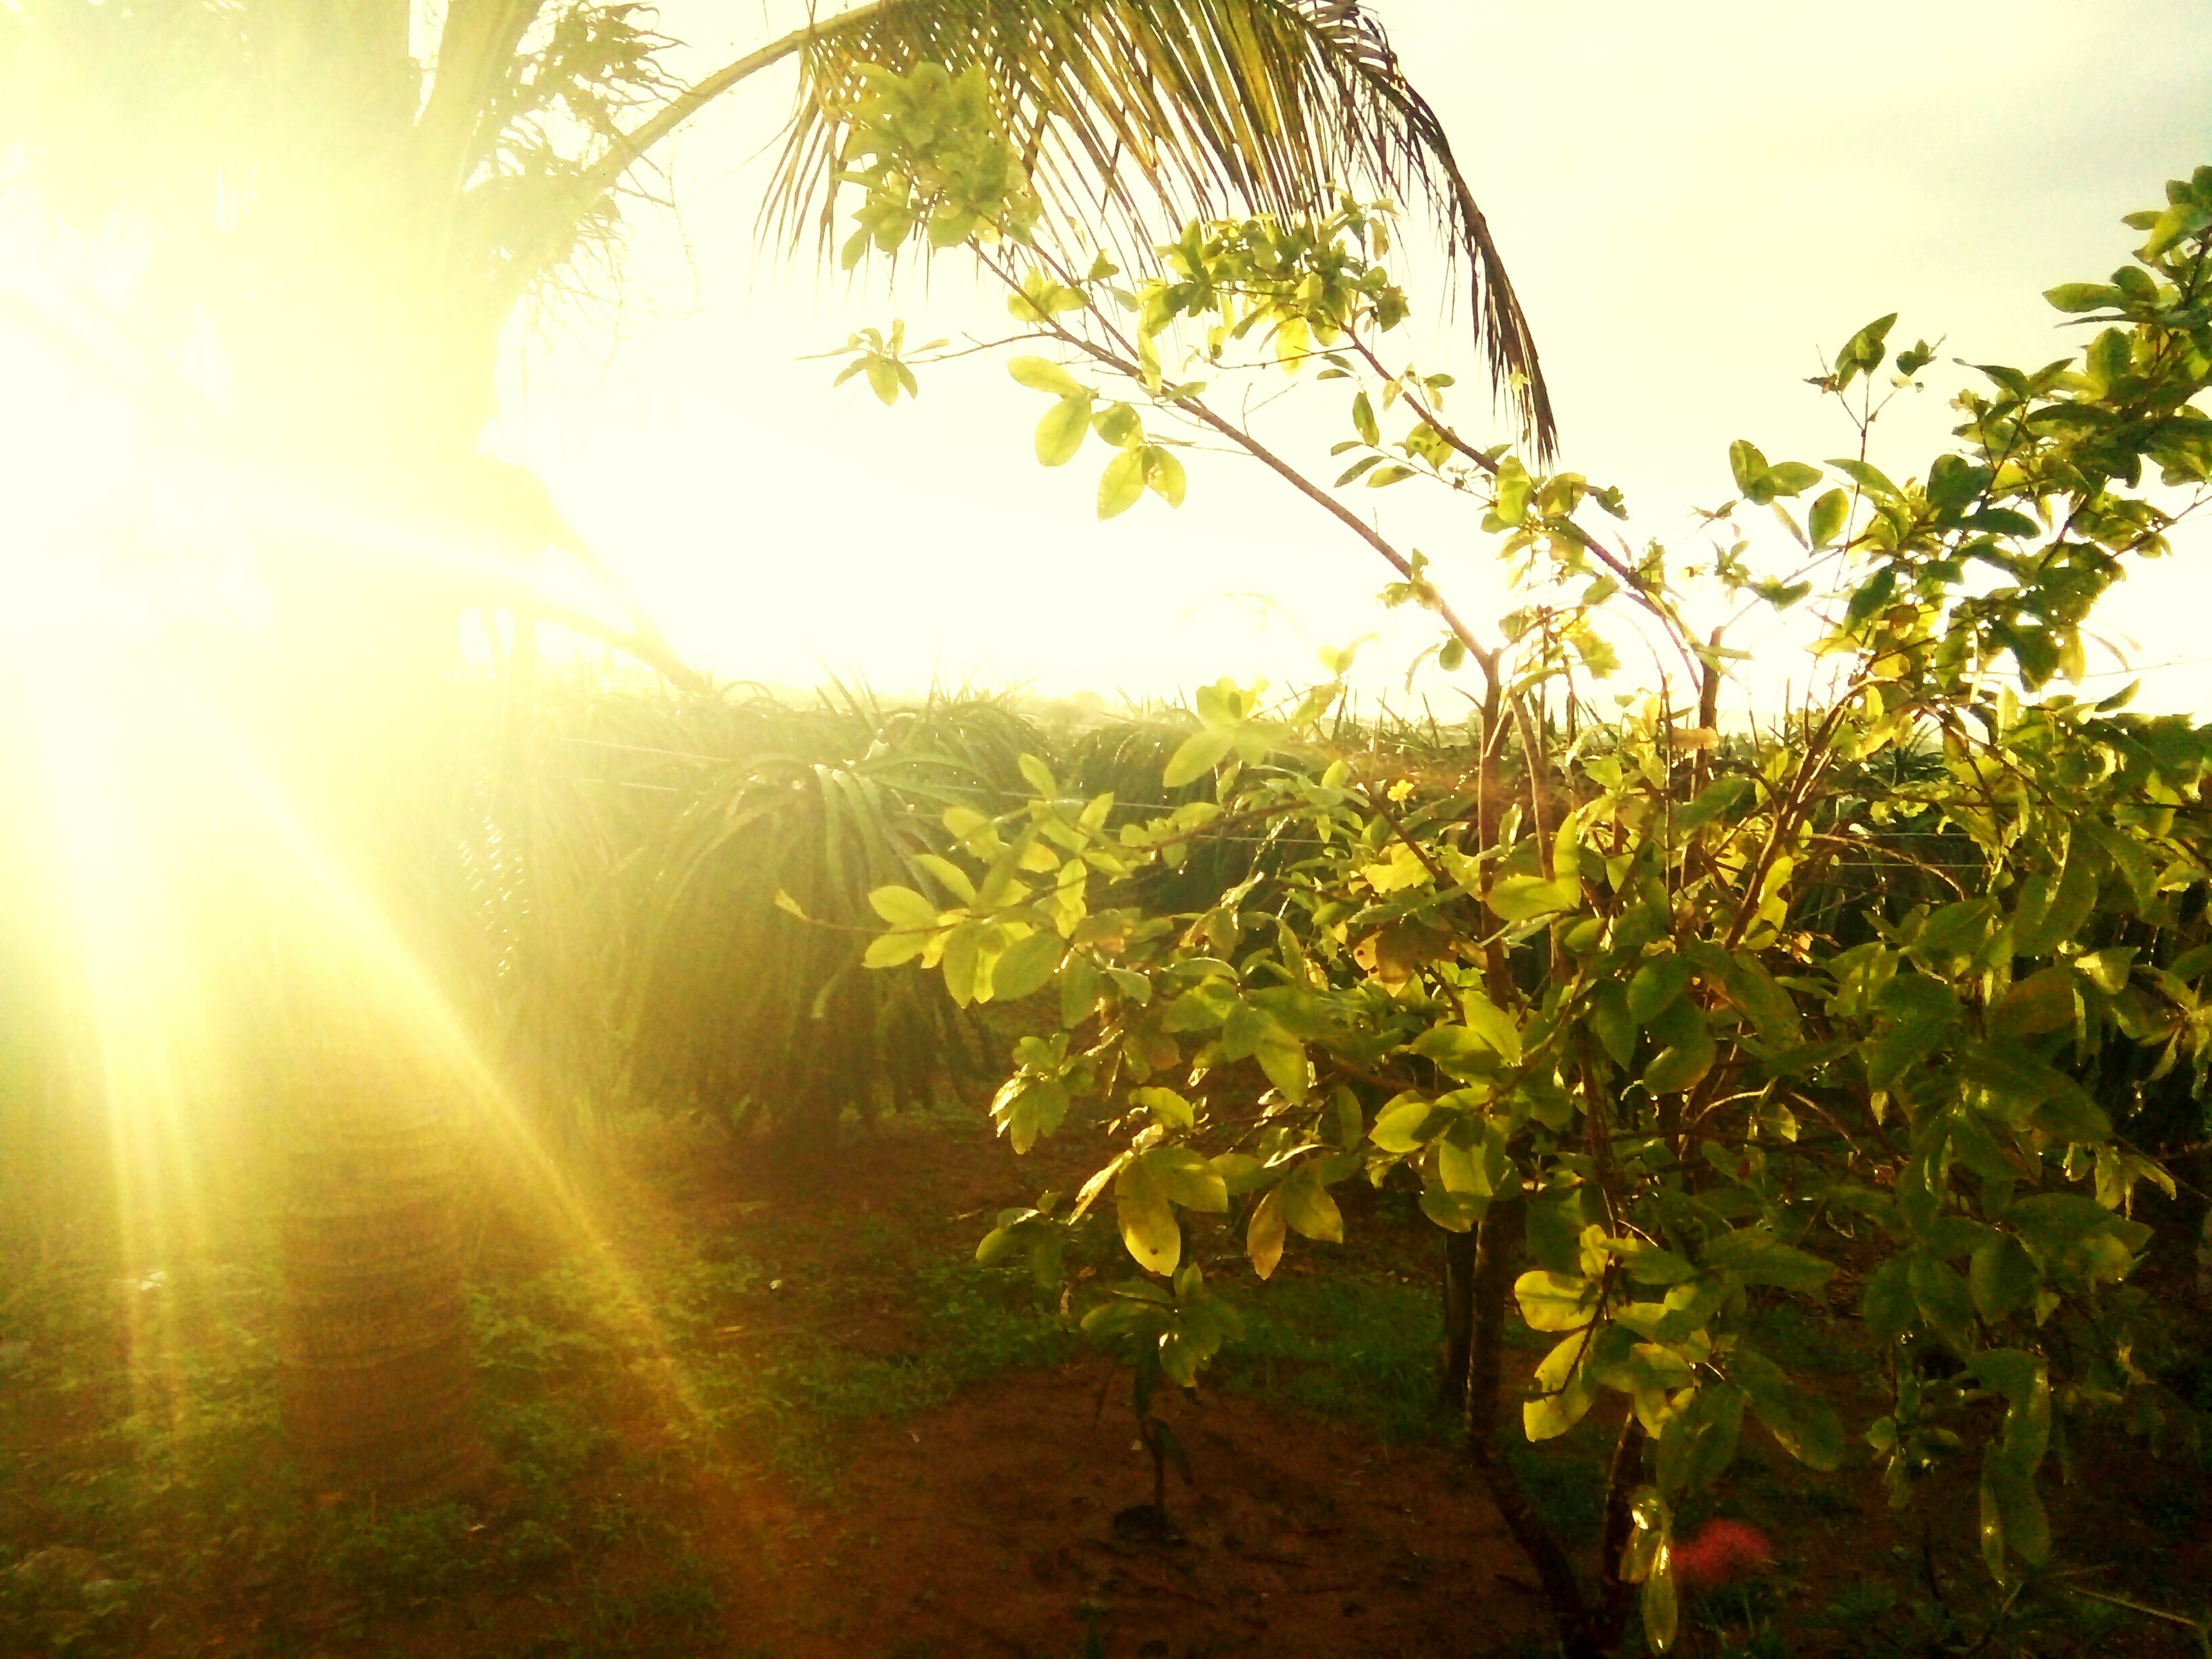 growth, nature, tree, no people, leaf, outdoors, day, sunlight, plant, beauty in nature, freshness